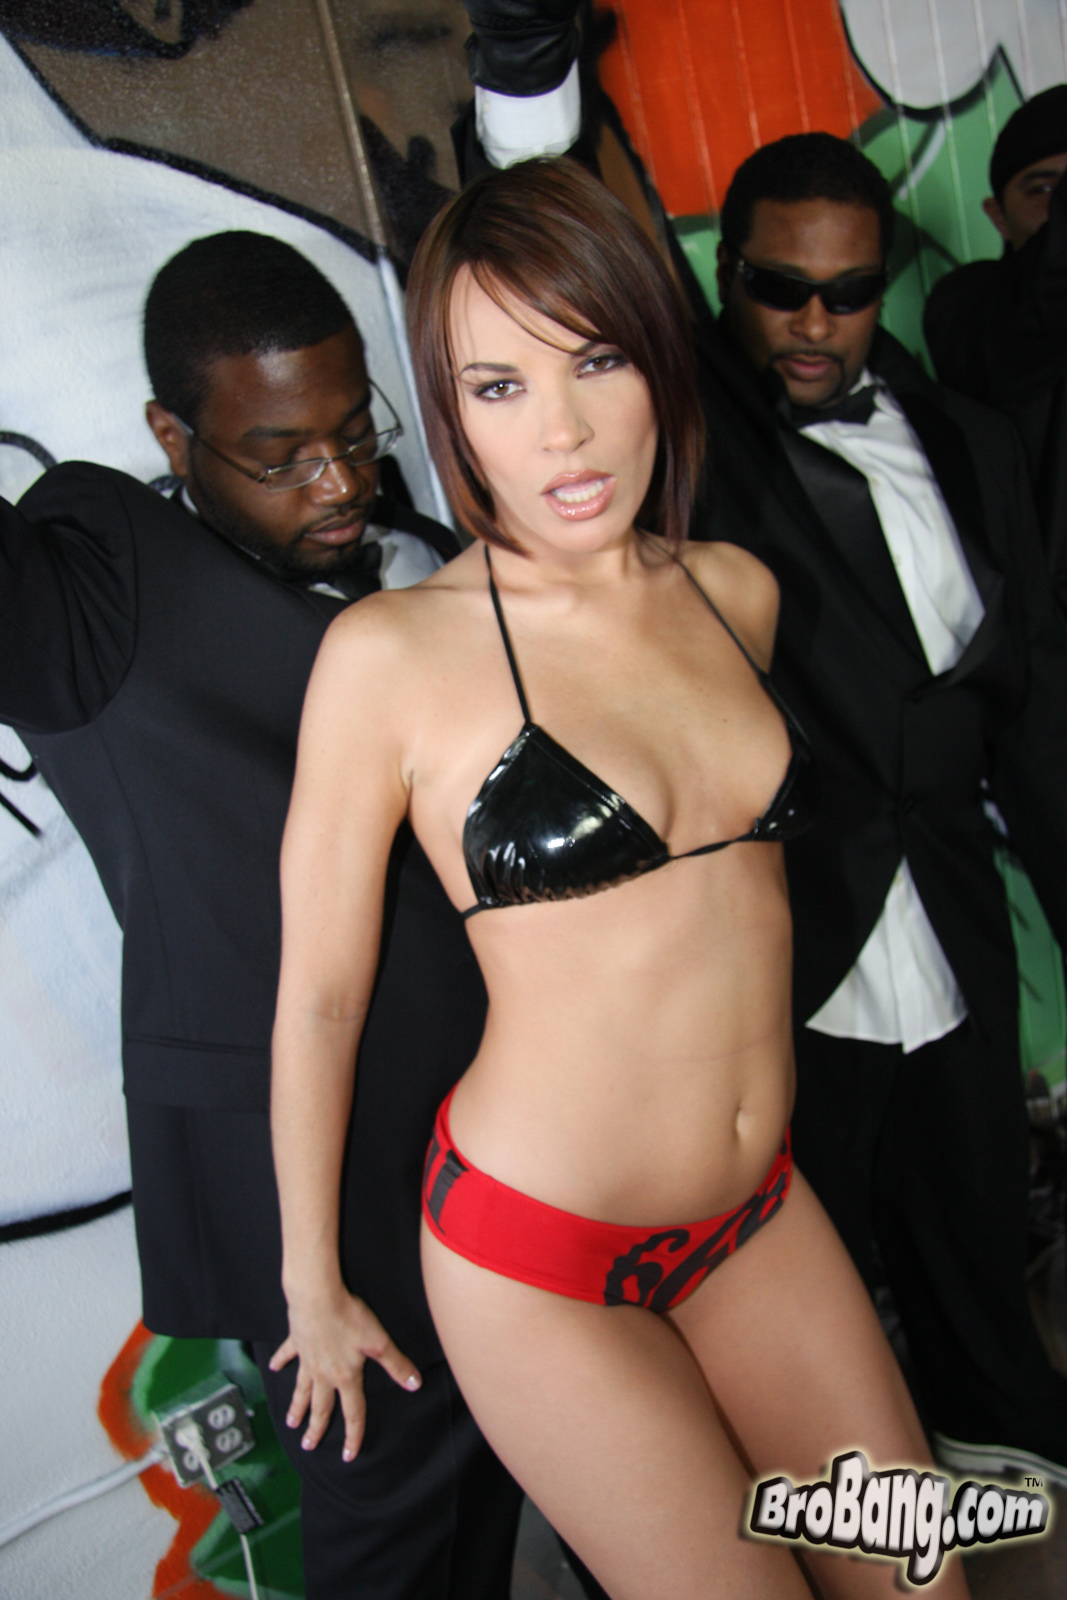 Interracial Blow Bang / Dana Dearmond